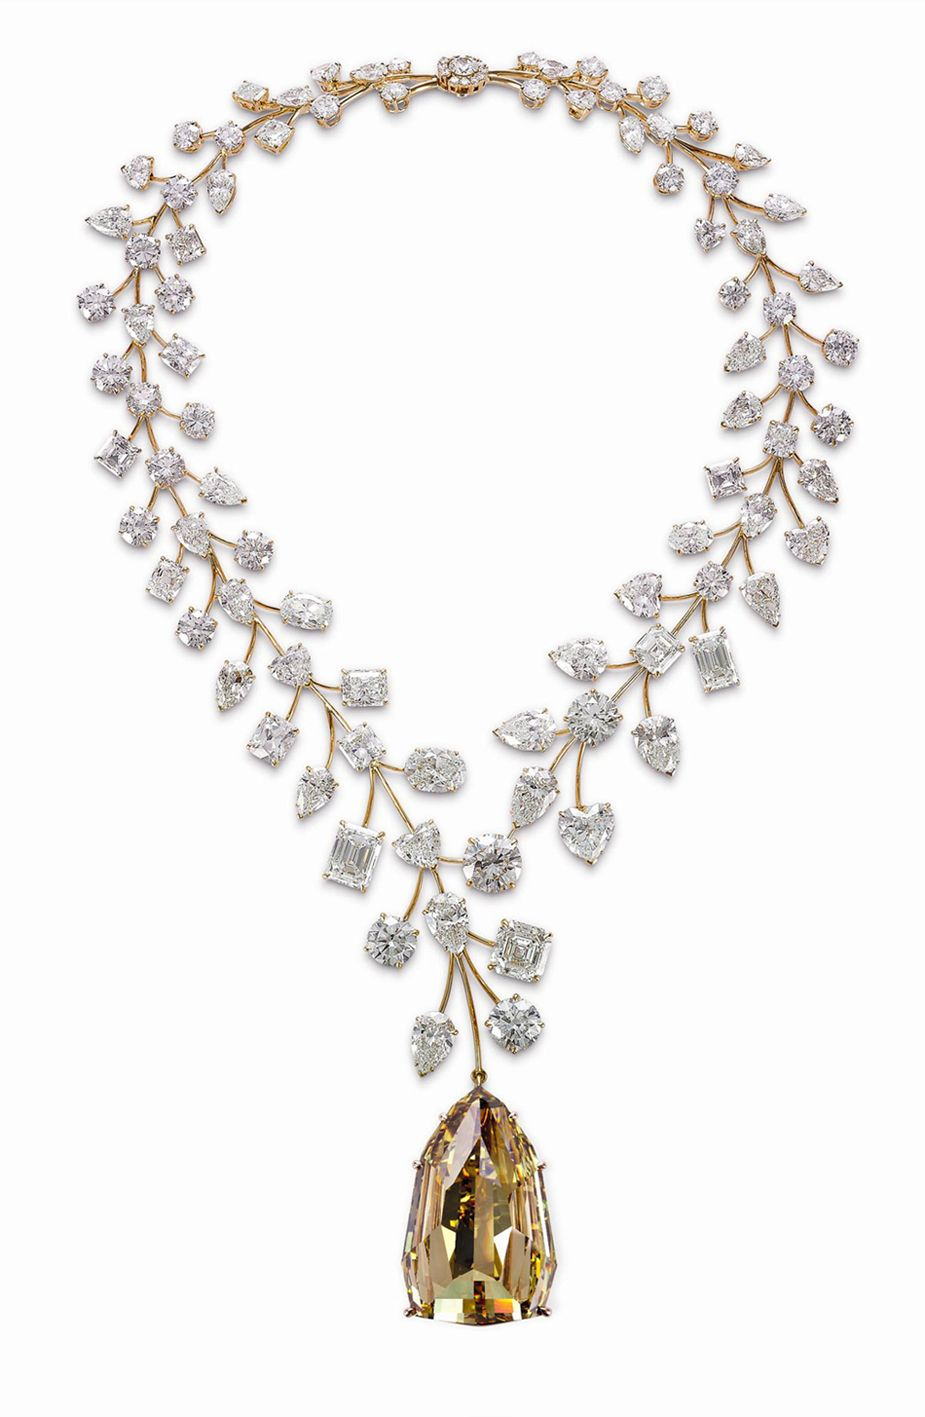 cb91e4075e352 The Mouawad L Incomparable Diamond Necklace has been certified as the most  valuable necklace in the world by Guinness World Records.